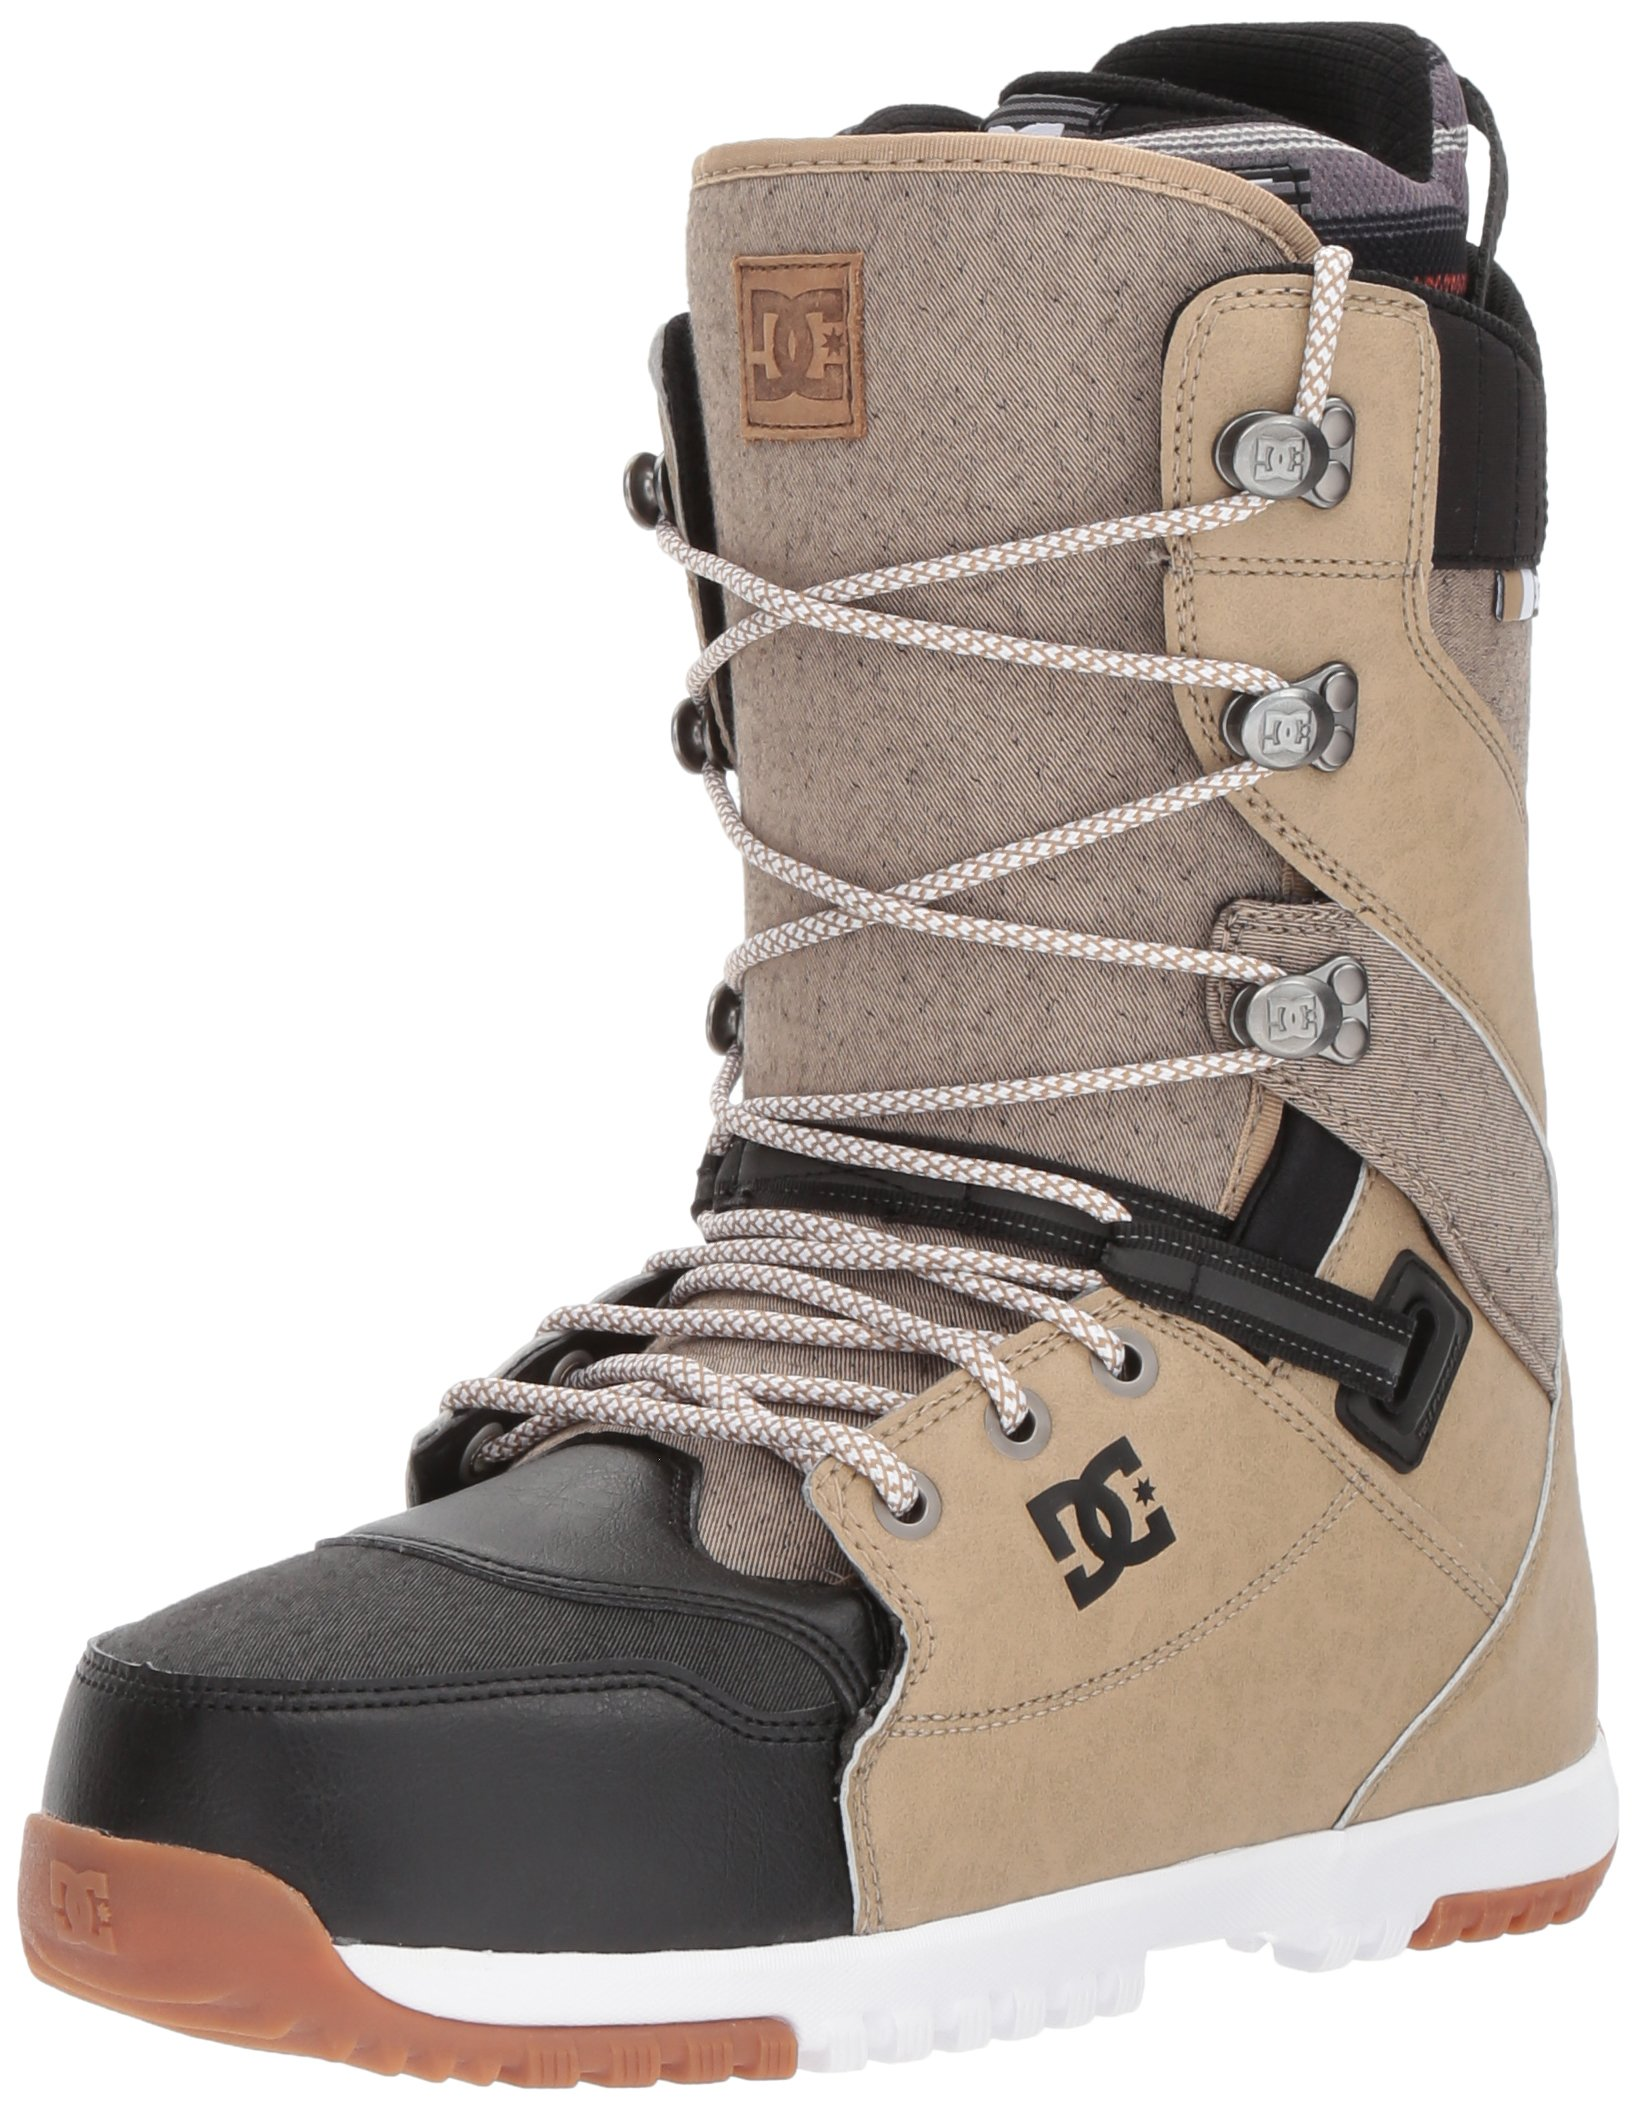 Best Rated in Men's Snowboard Boots & Helpful Customer